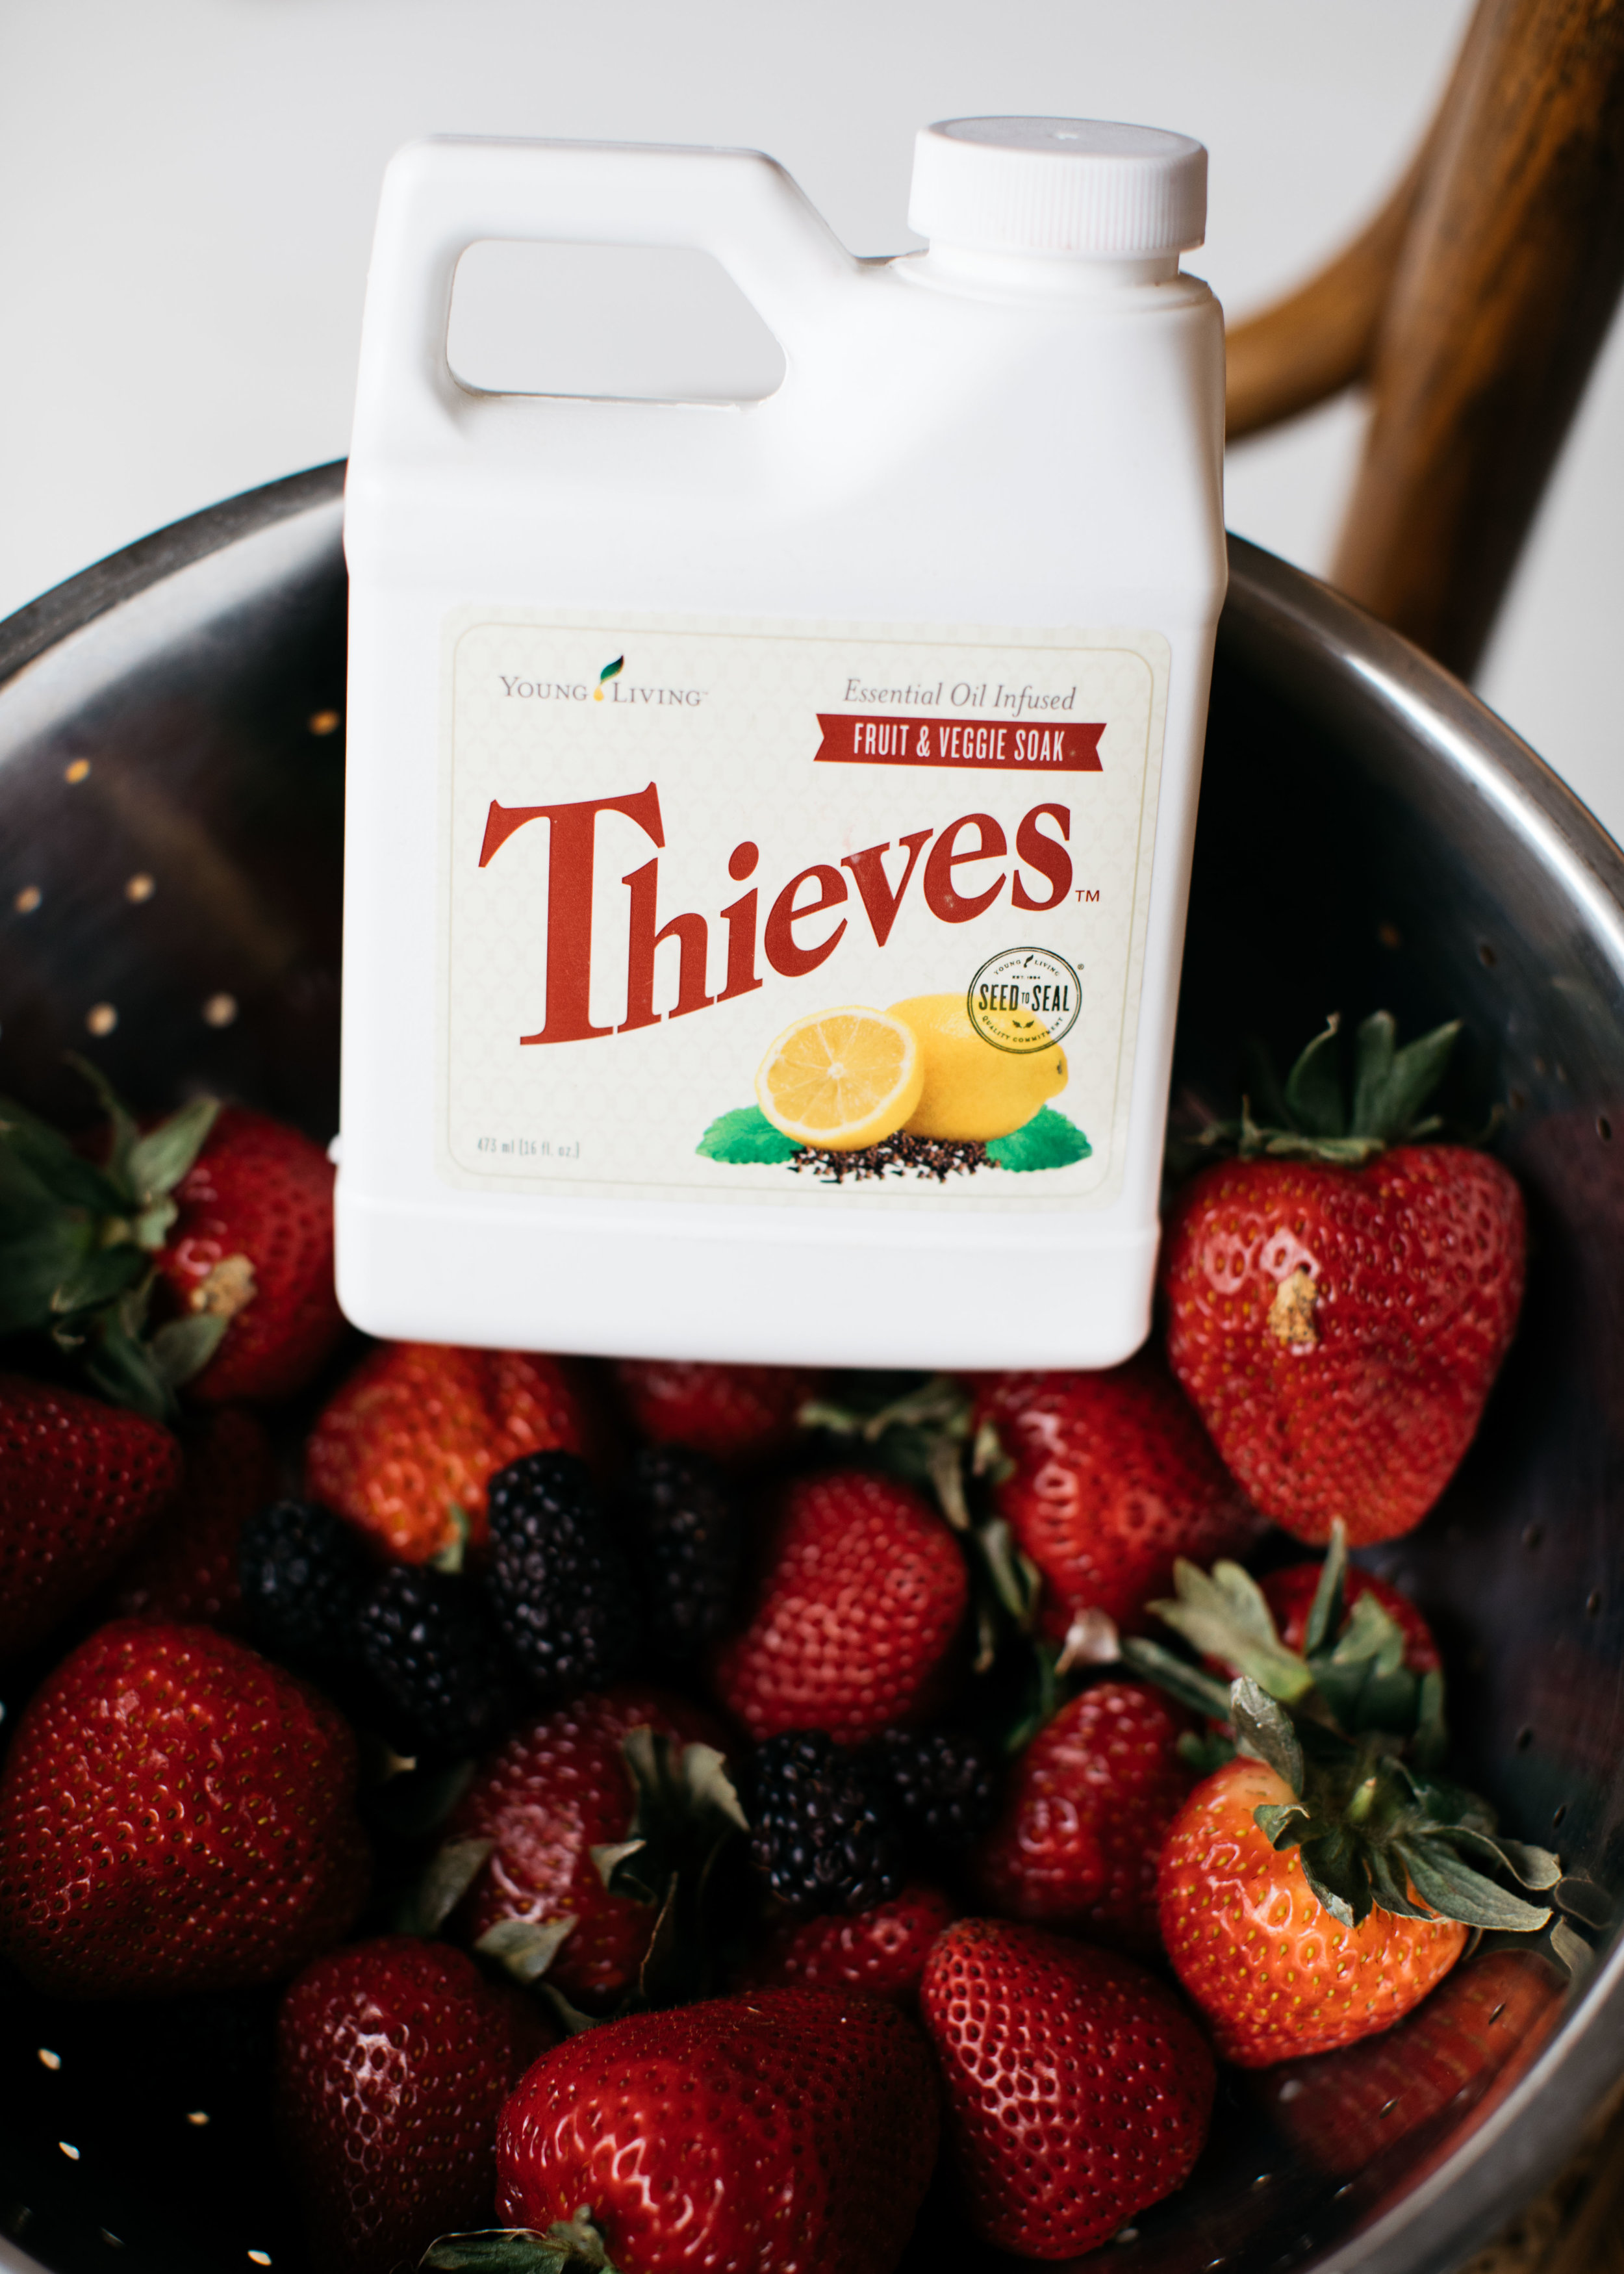 use 1-2 capfuls per sink full of veggies and fruit. Cleans dirt, germs, unwanted sprays off surface. Smells like heaven.